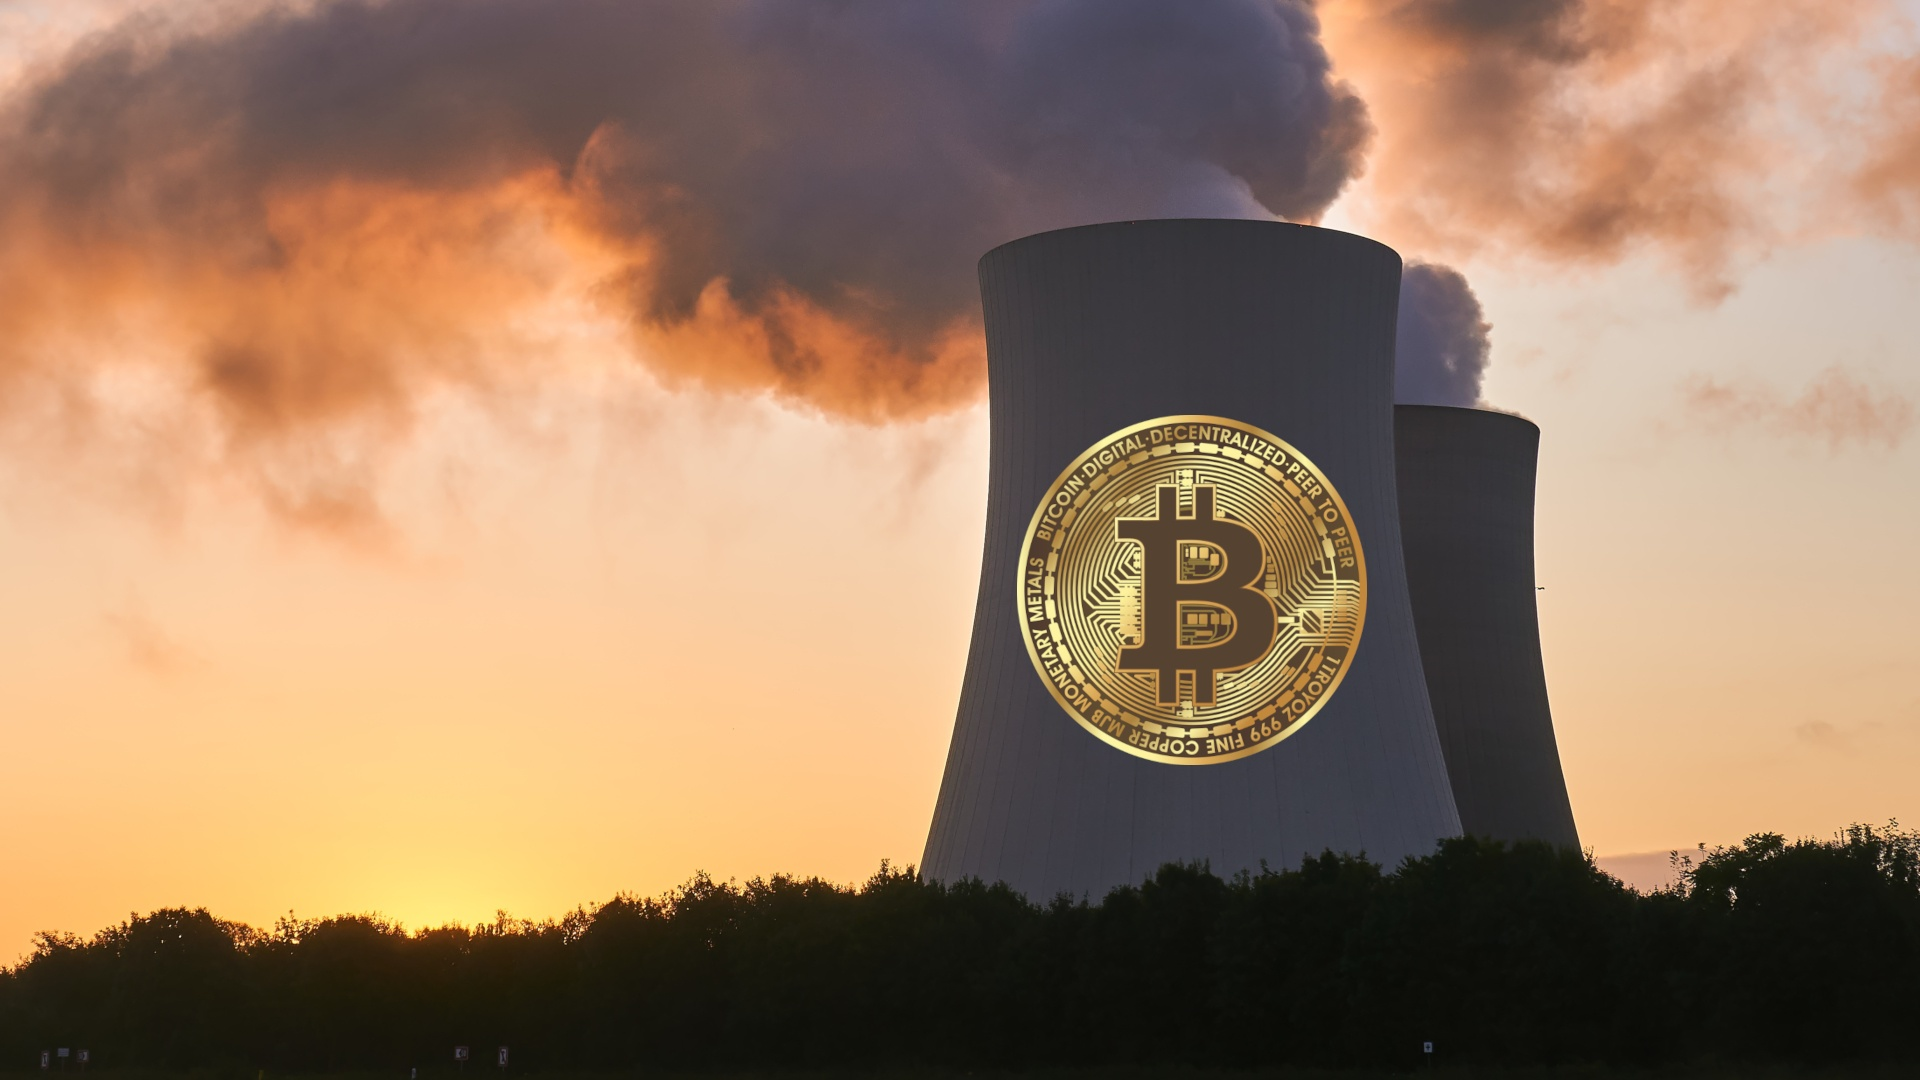 Cryptomining: Nuclear power plant is supposed to cover the immense electricity demand